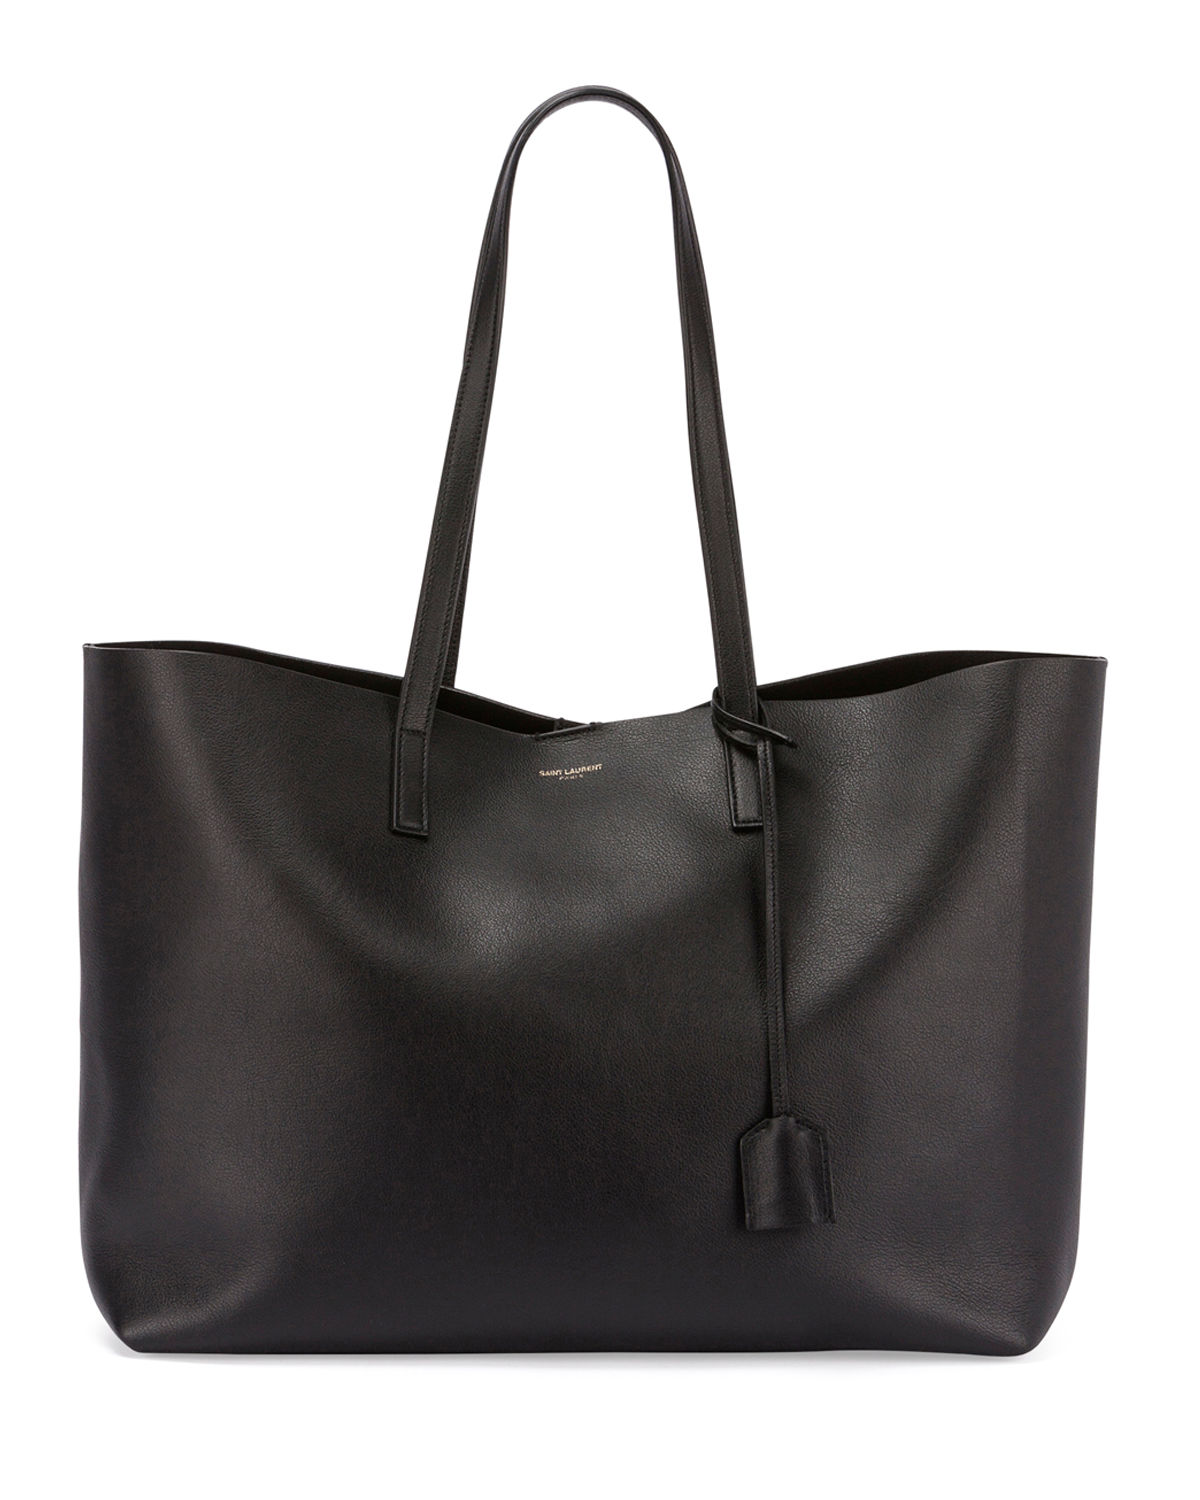 ba142327a4 Saint Laurent East West Shopping Tote Bag